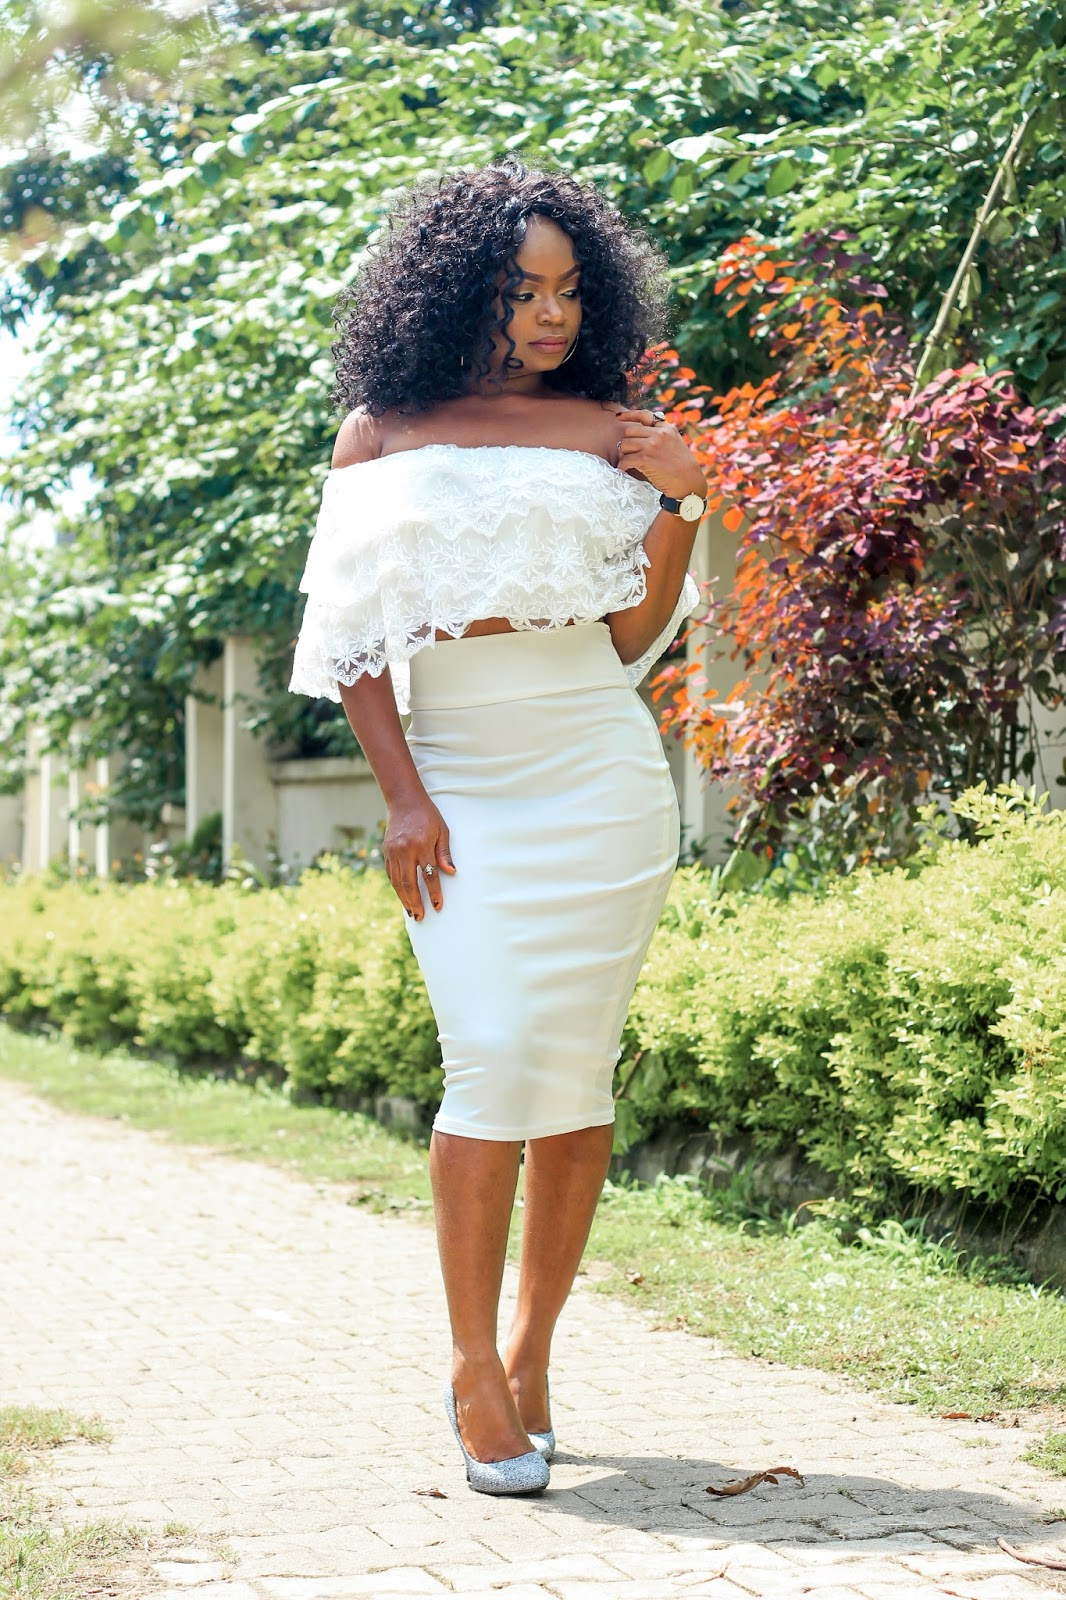 COLD SHOULDER - Lace Cold/Off Shoulder Top with White Pencil Skirt and grey glitter court shoes from Jumia